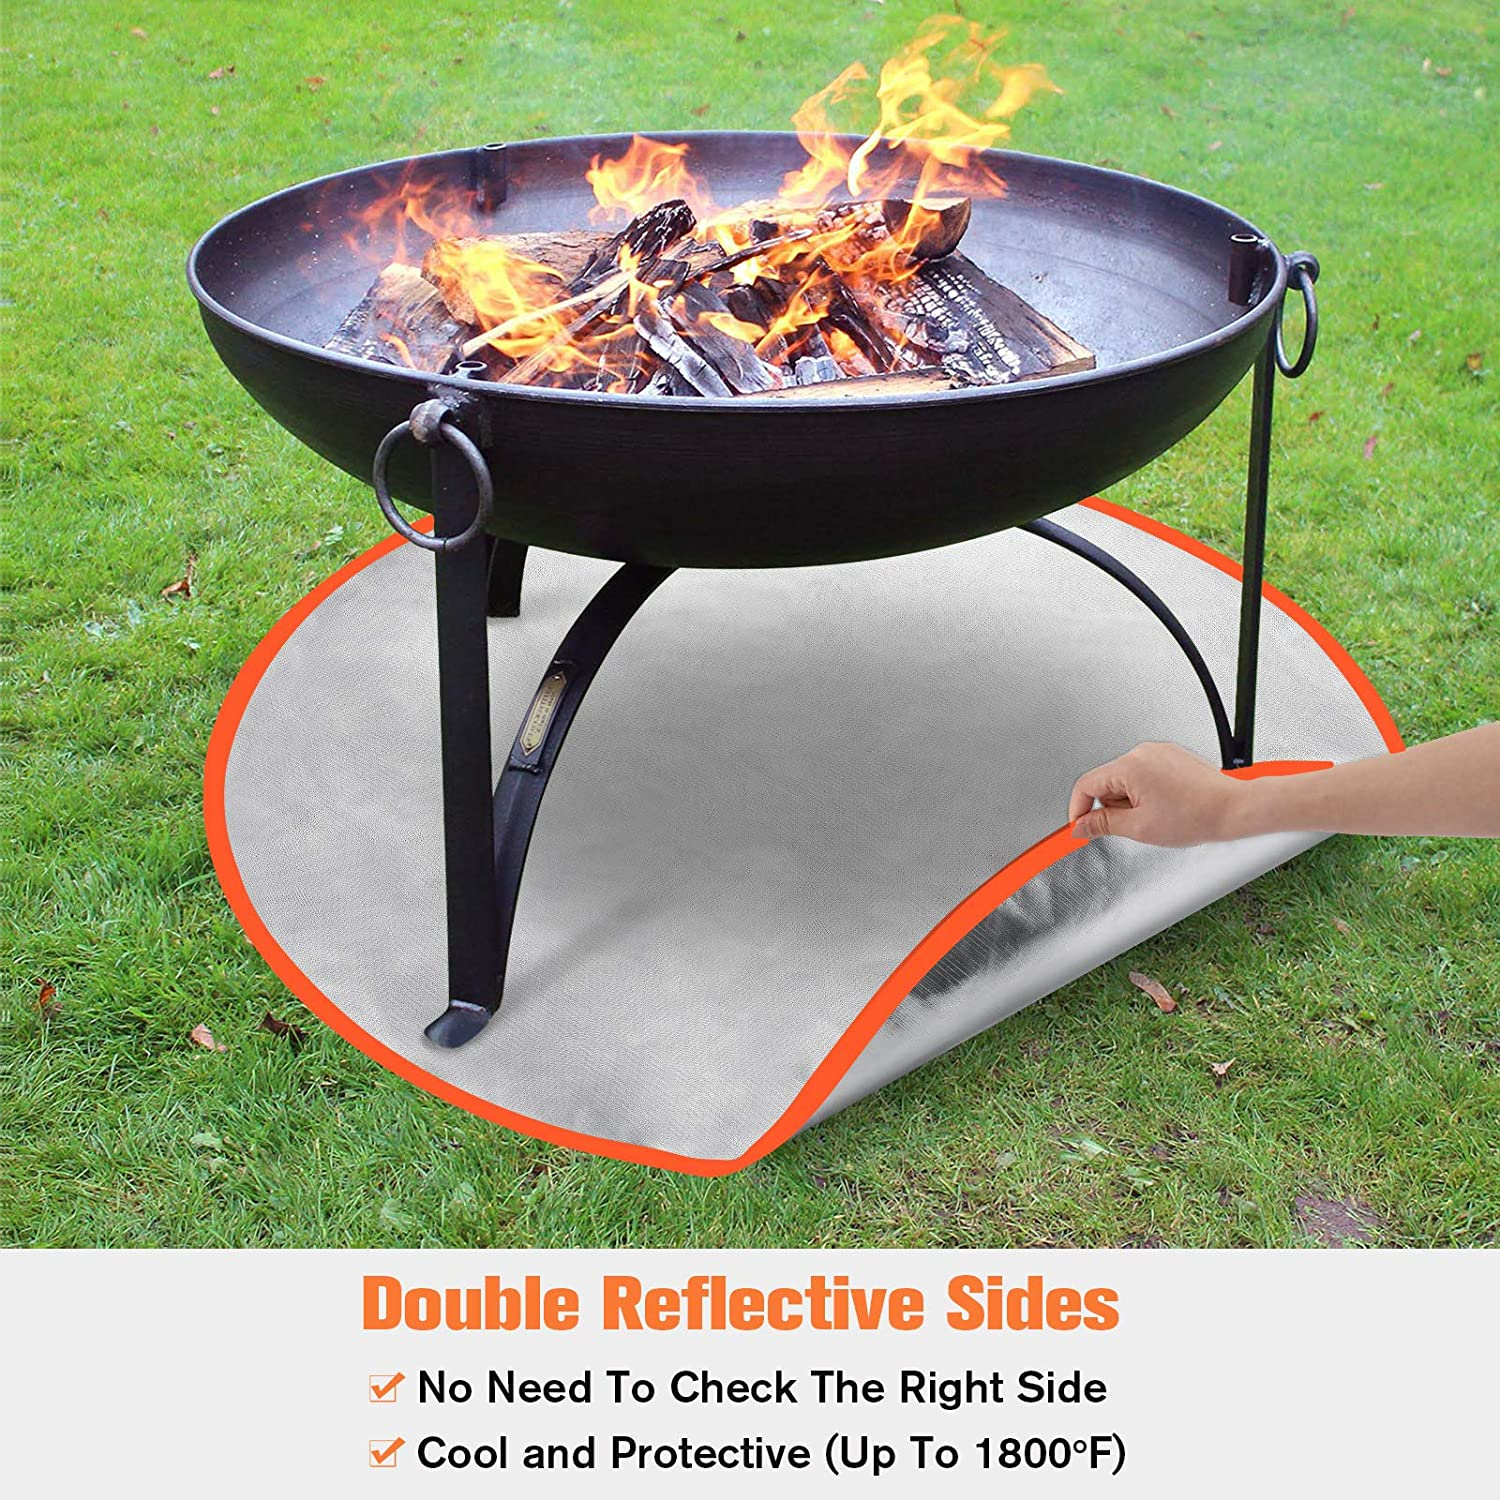 Welluck 32 Inch Fire Pit Mat Fireproof Firepit Pad Deck Protector Double Sided Round Heat Resistant Shield Wood Concrete Floor Grass Patio Mat For Chiminea Solo Bonfire Grill Stove Patio Lawn Garden Leaddigital Grills